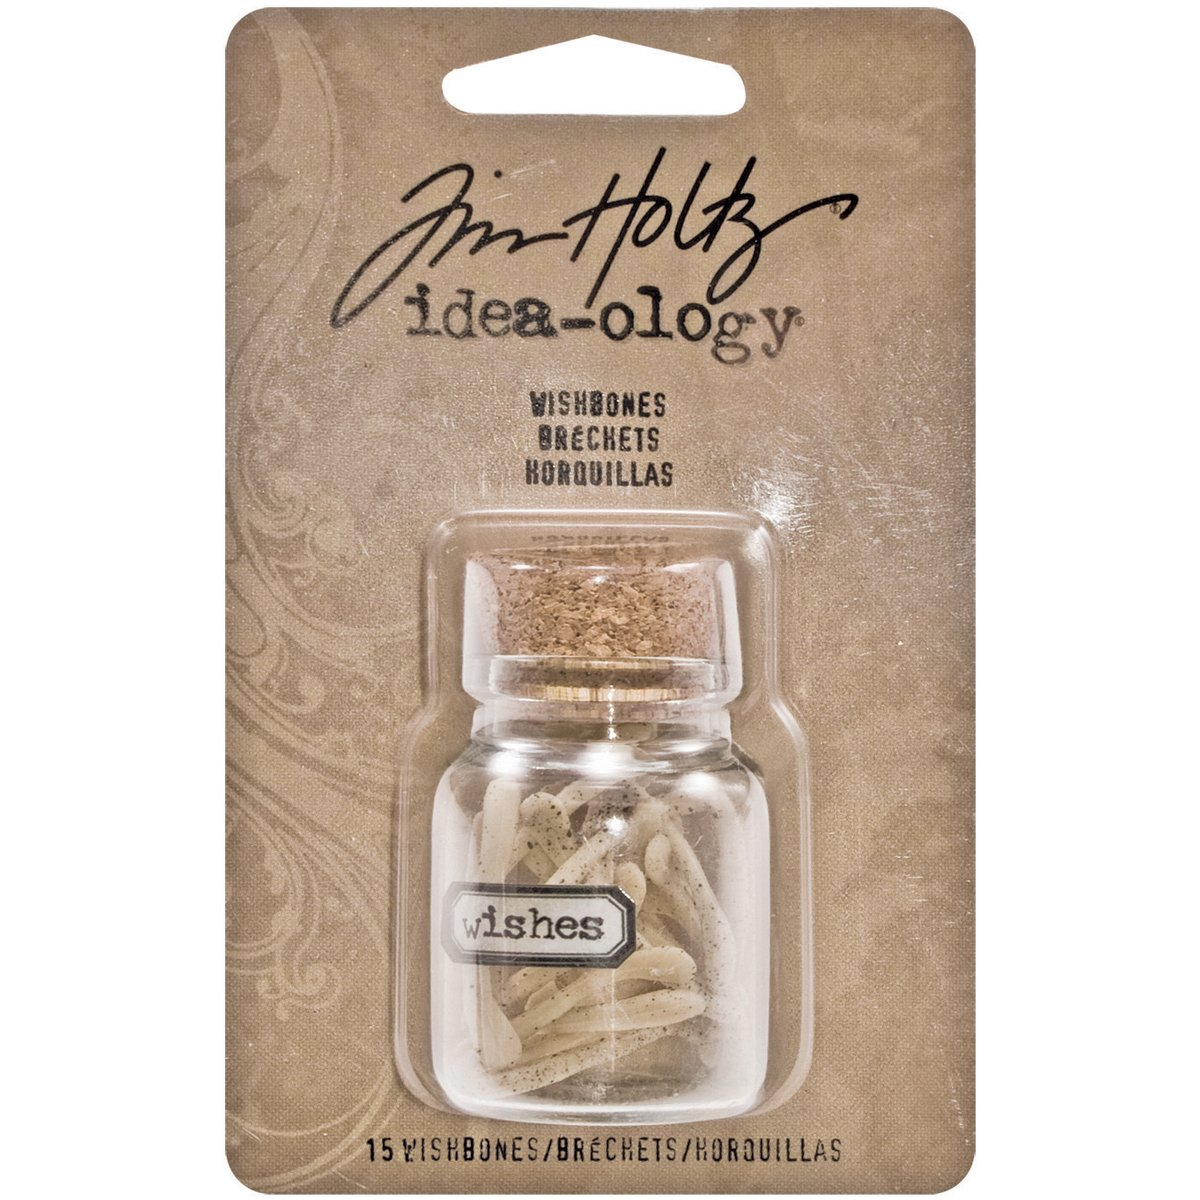 Tim Holtz Idea-ology Resin Wishbones, 1x5/8-Inch, 15 in Corked Vial, TH93071 Advantus Corp.